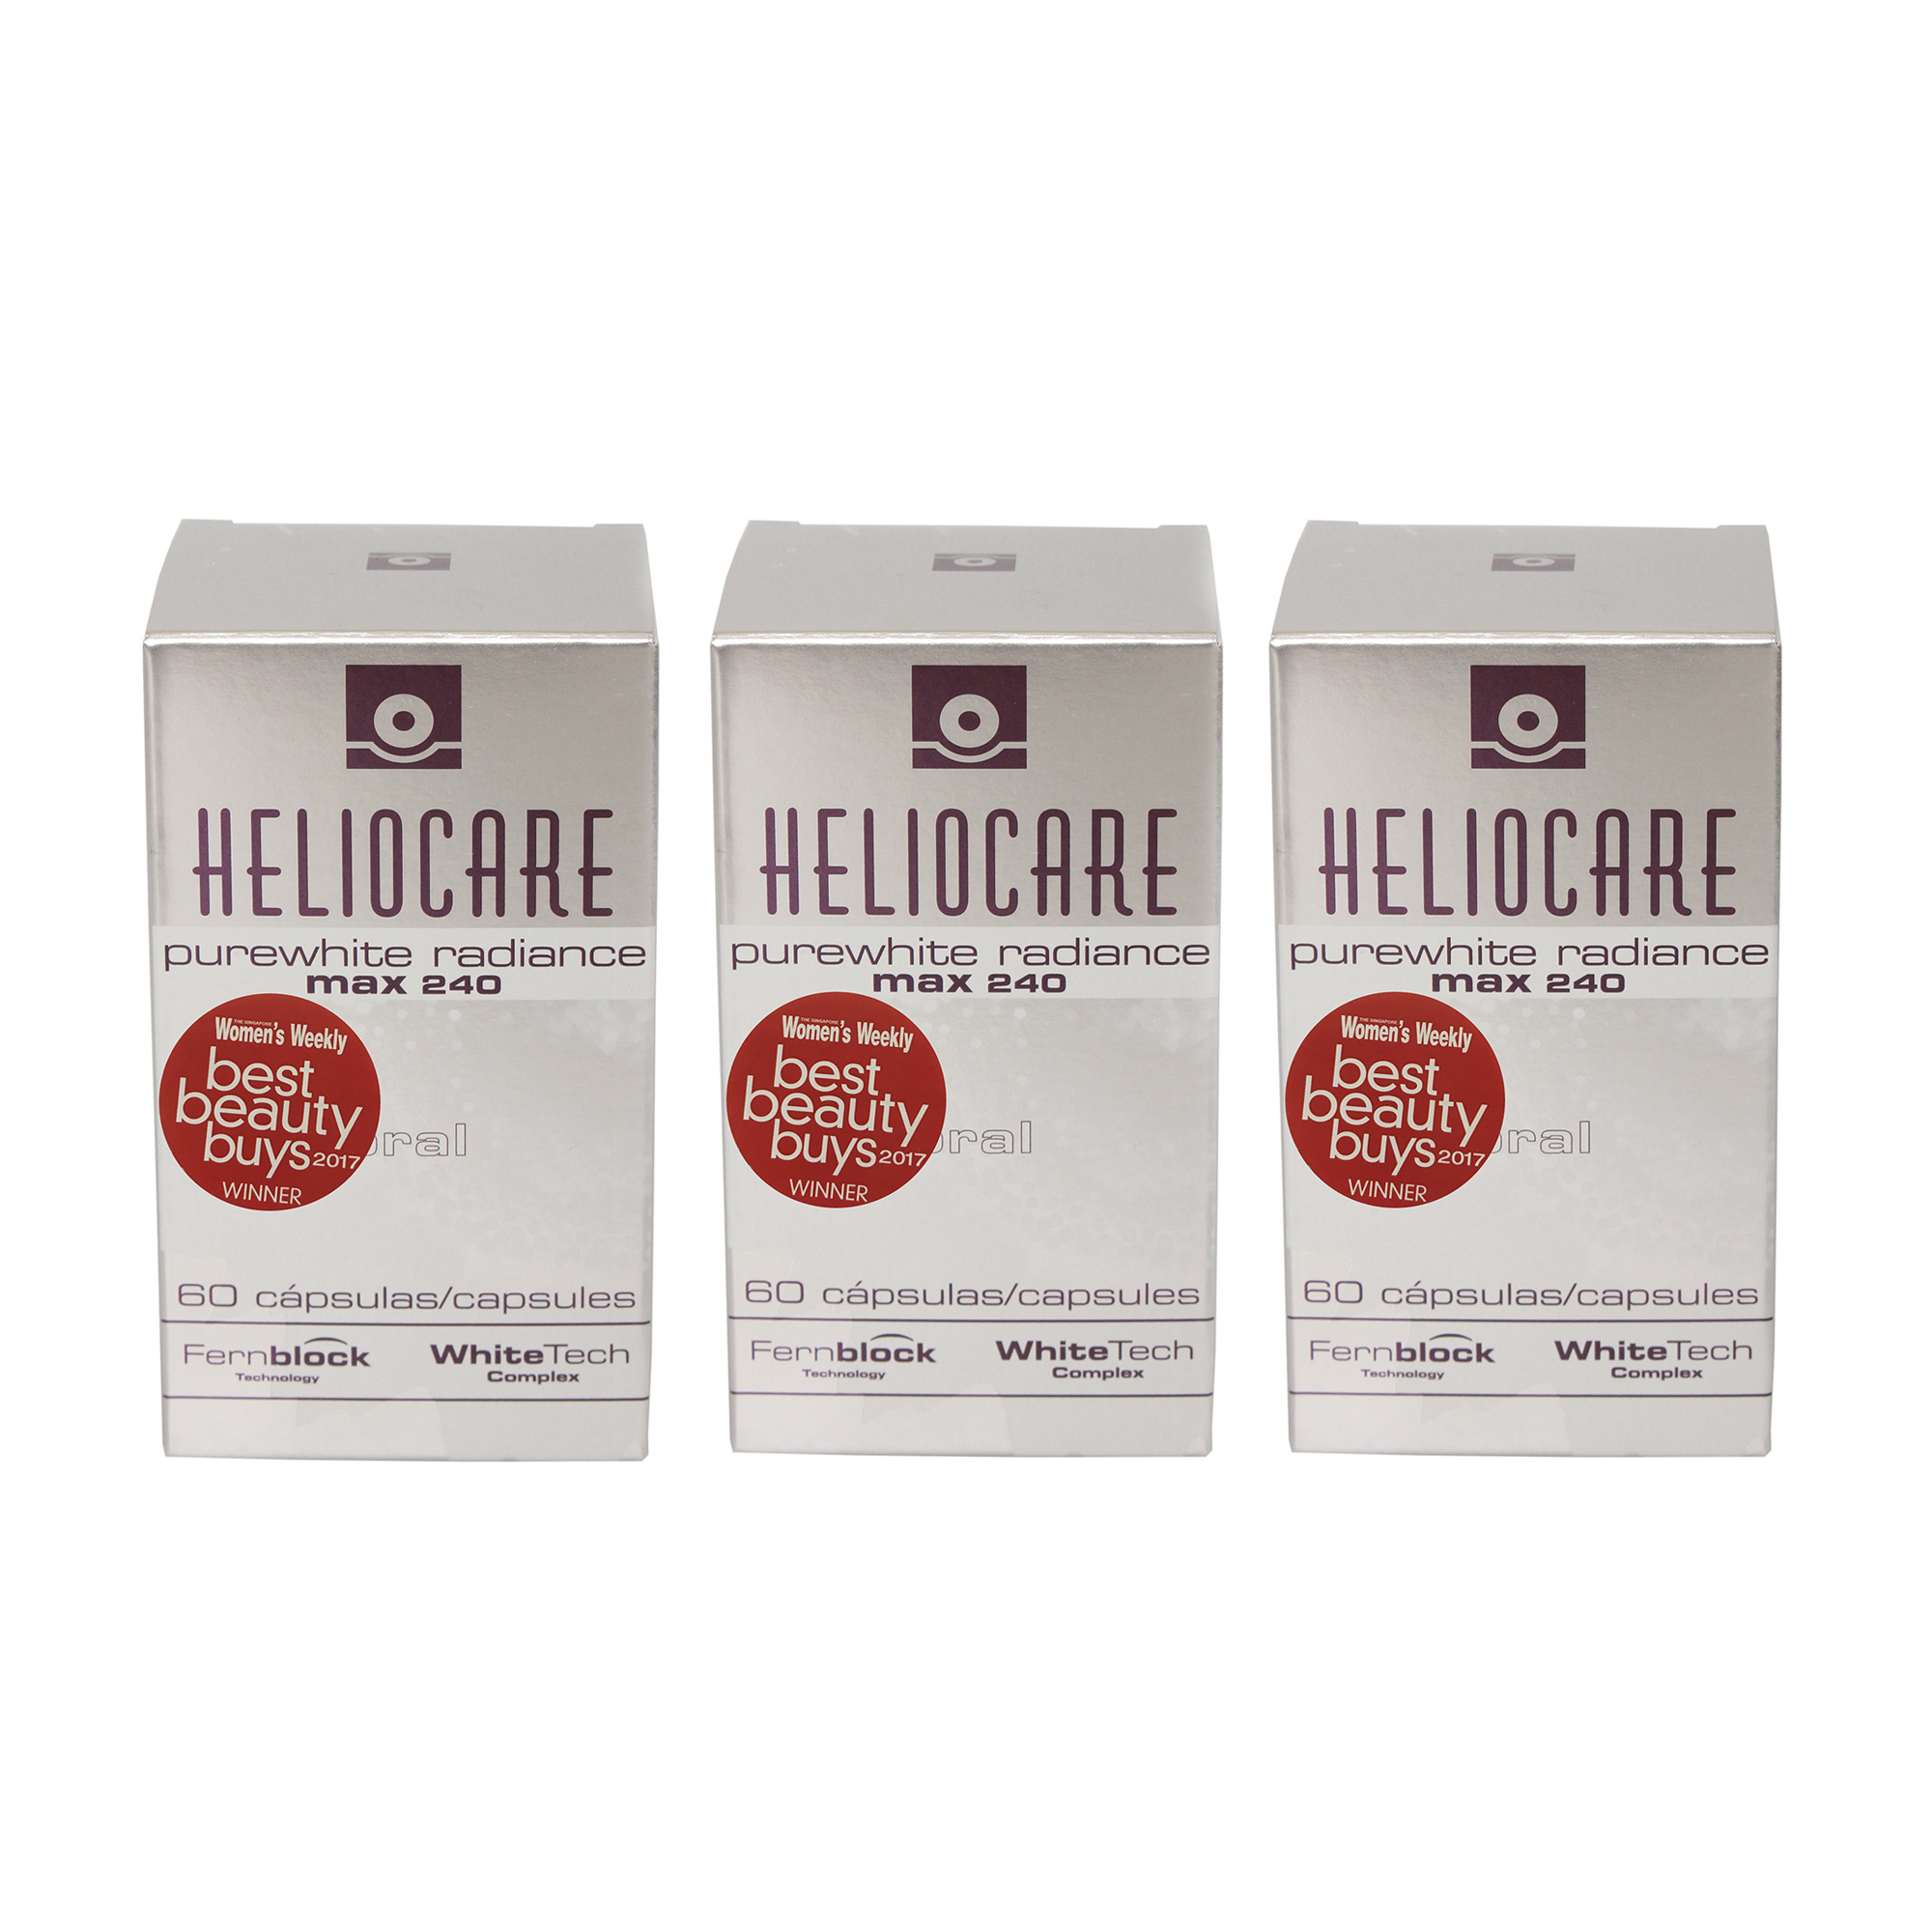 heliocare purewhite radiance bundle of 3 boxes